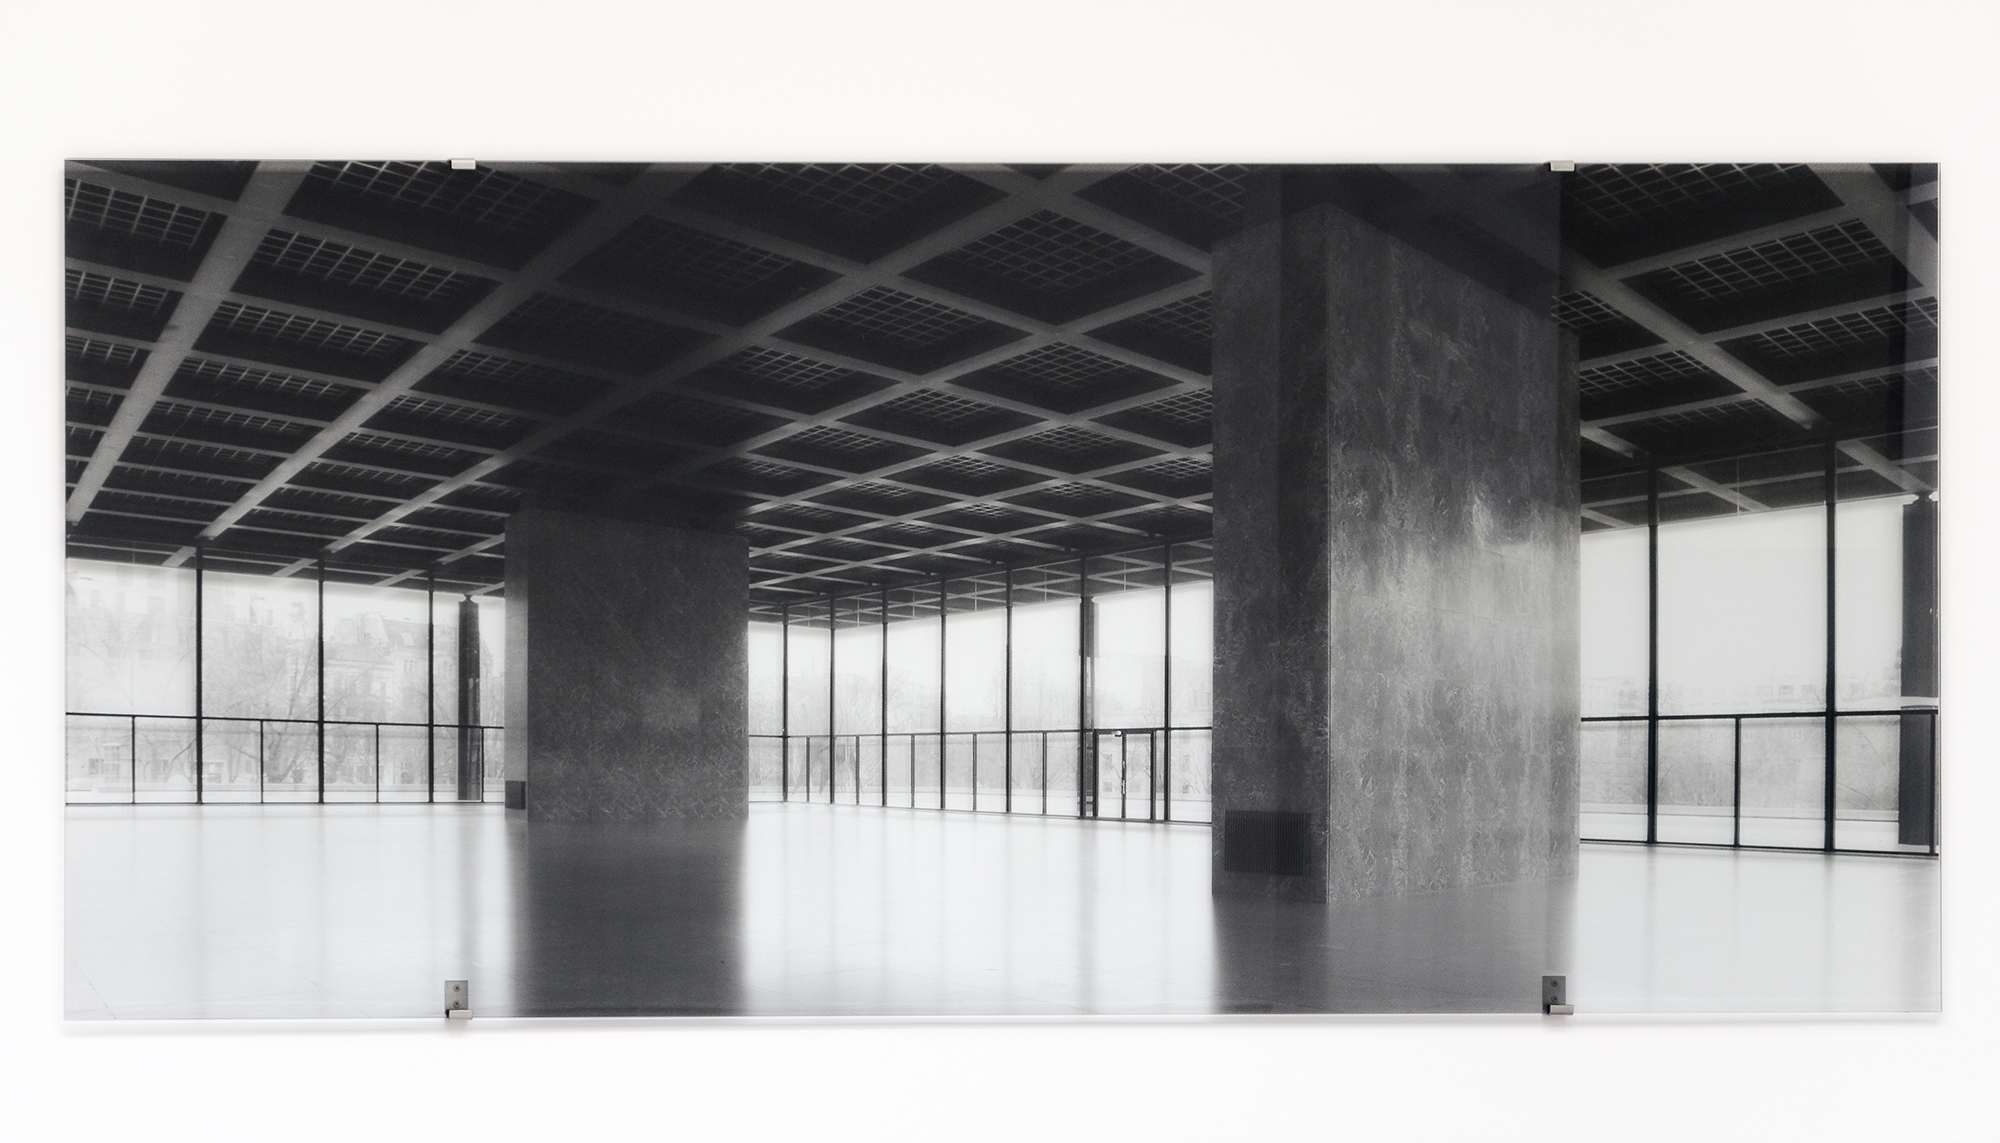 National Gallery, Ventilation Shafts , 2017 single-panel transparent silkscreen print on glass 43-1/4 x 96-1/2 inches 110 x 245 cm Edition of 5